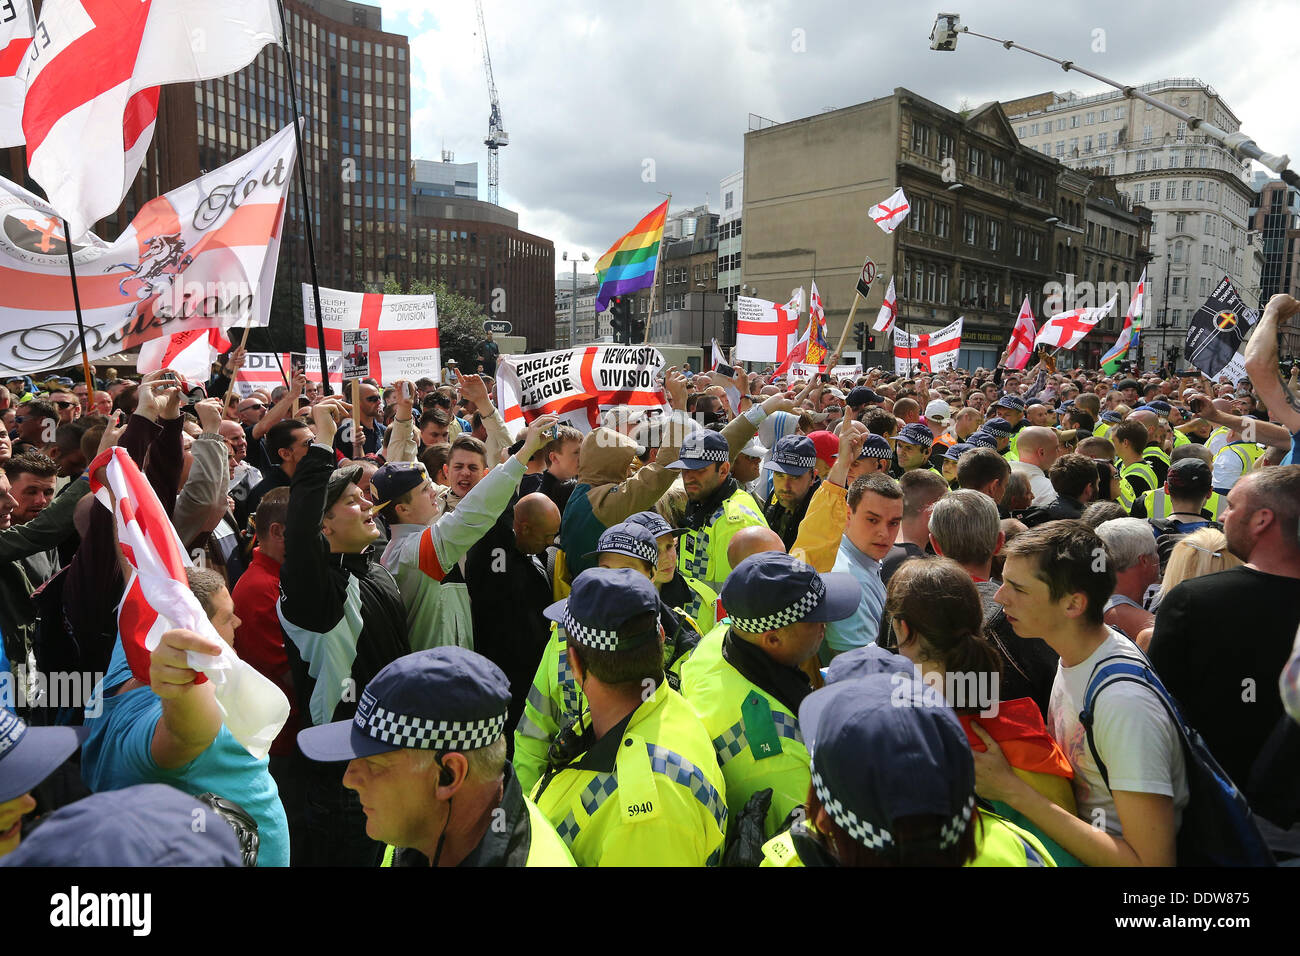 London, UK. 7th September 2013. The Right-Wing Pressure Group, The English Defence League, March and rally against Sharia law on the outskirts of Tower Hamlets. London, United Kingdom, 07/09/2013  Credit:  Mario Mitsis / Alamy Live News - Stock Image